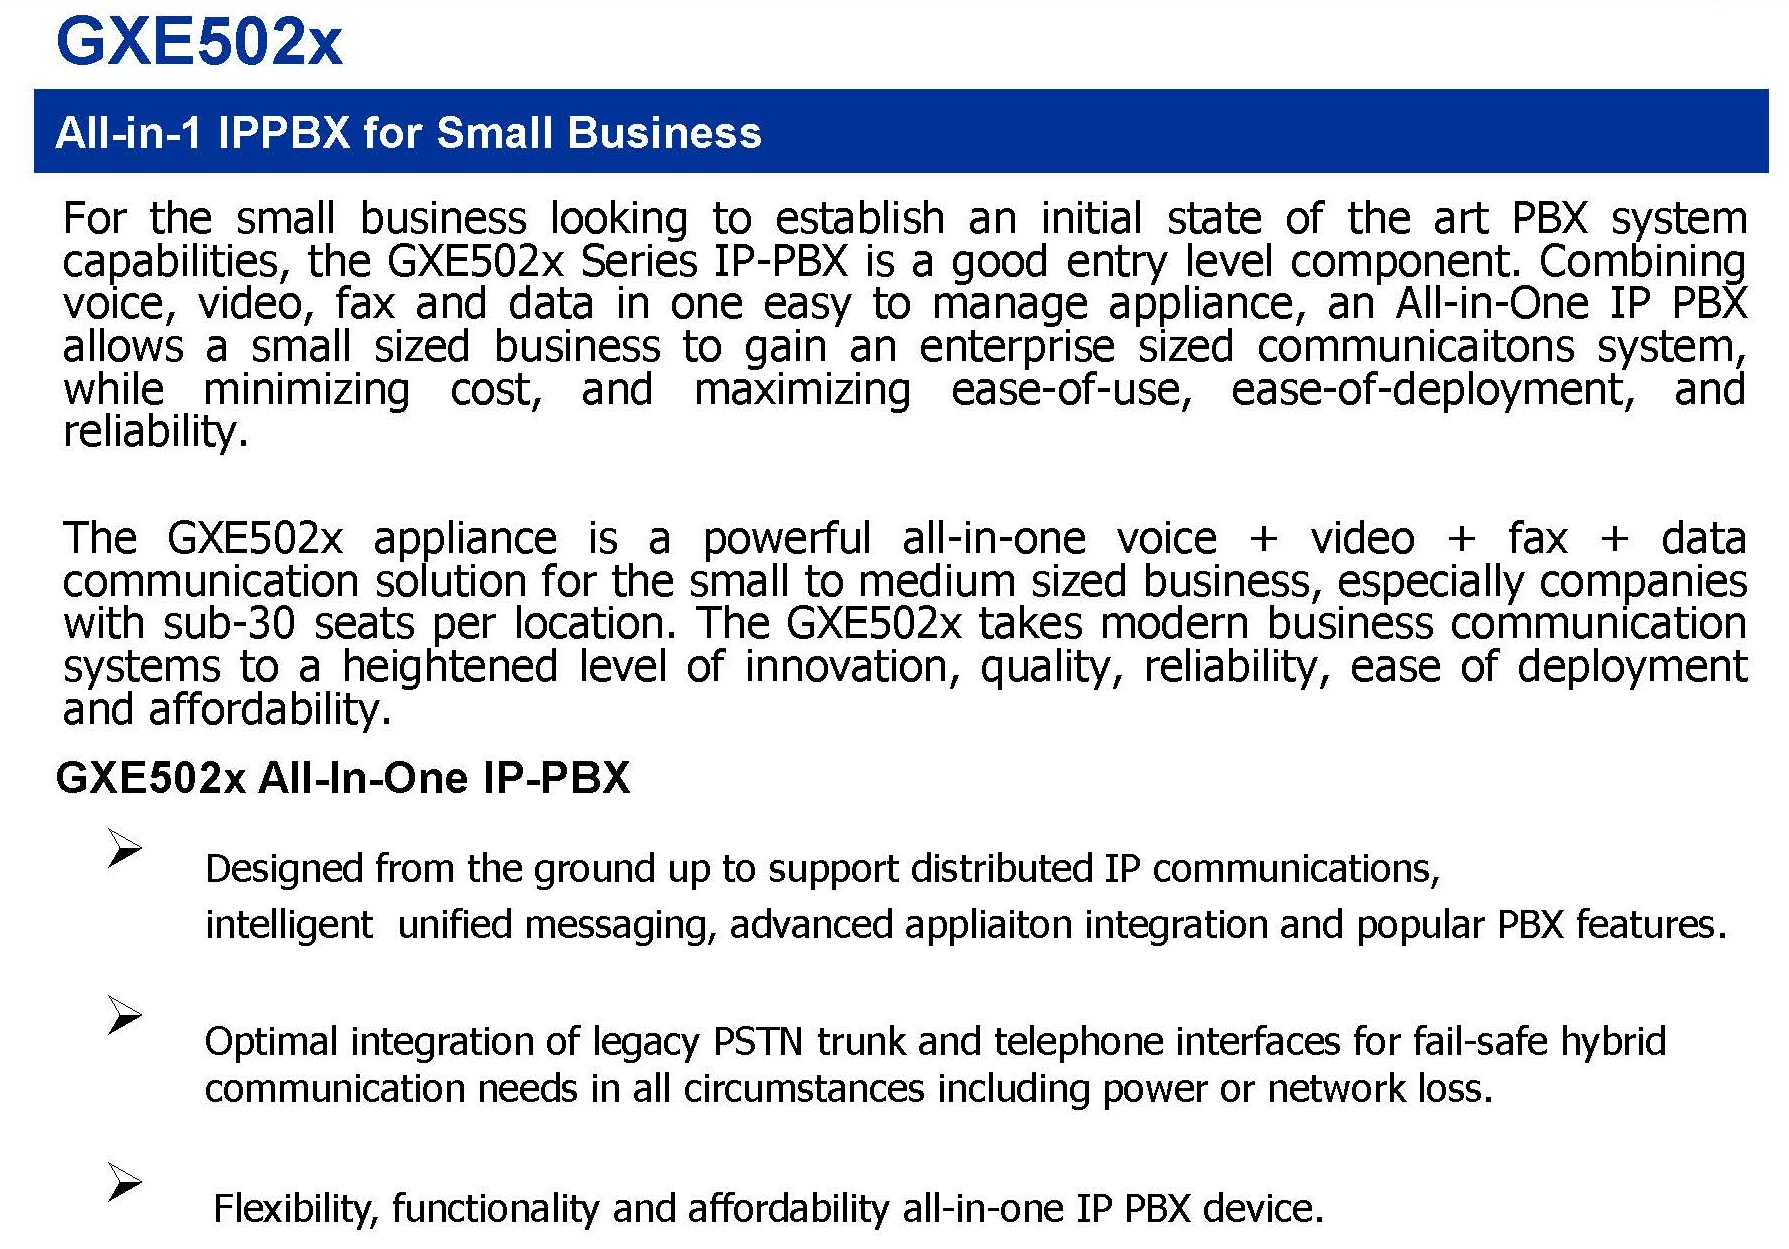 SDG Enterprise Voice Solution for SOHO and SMB segment Page 15